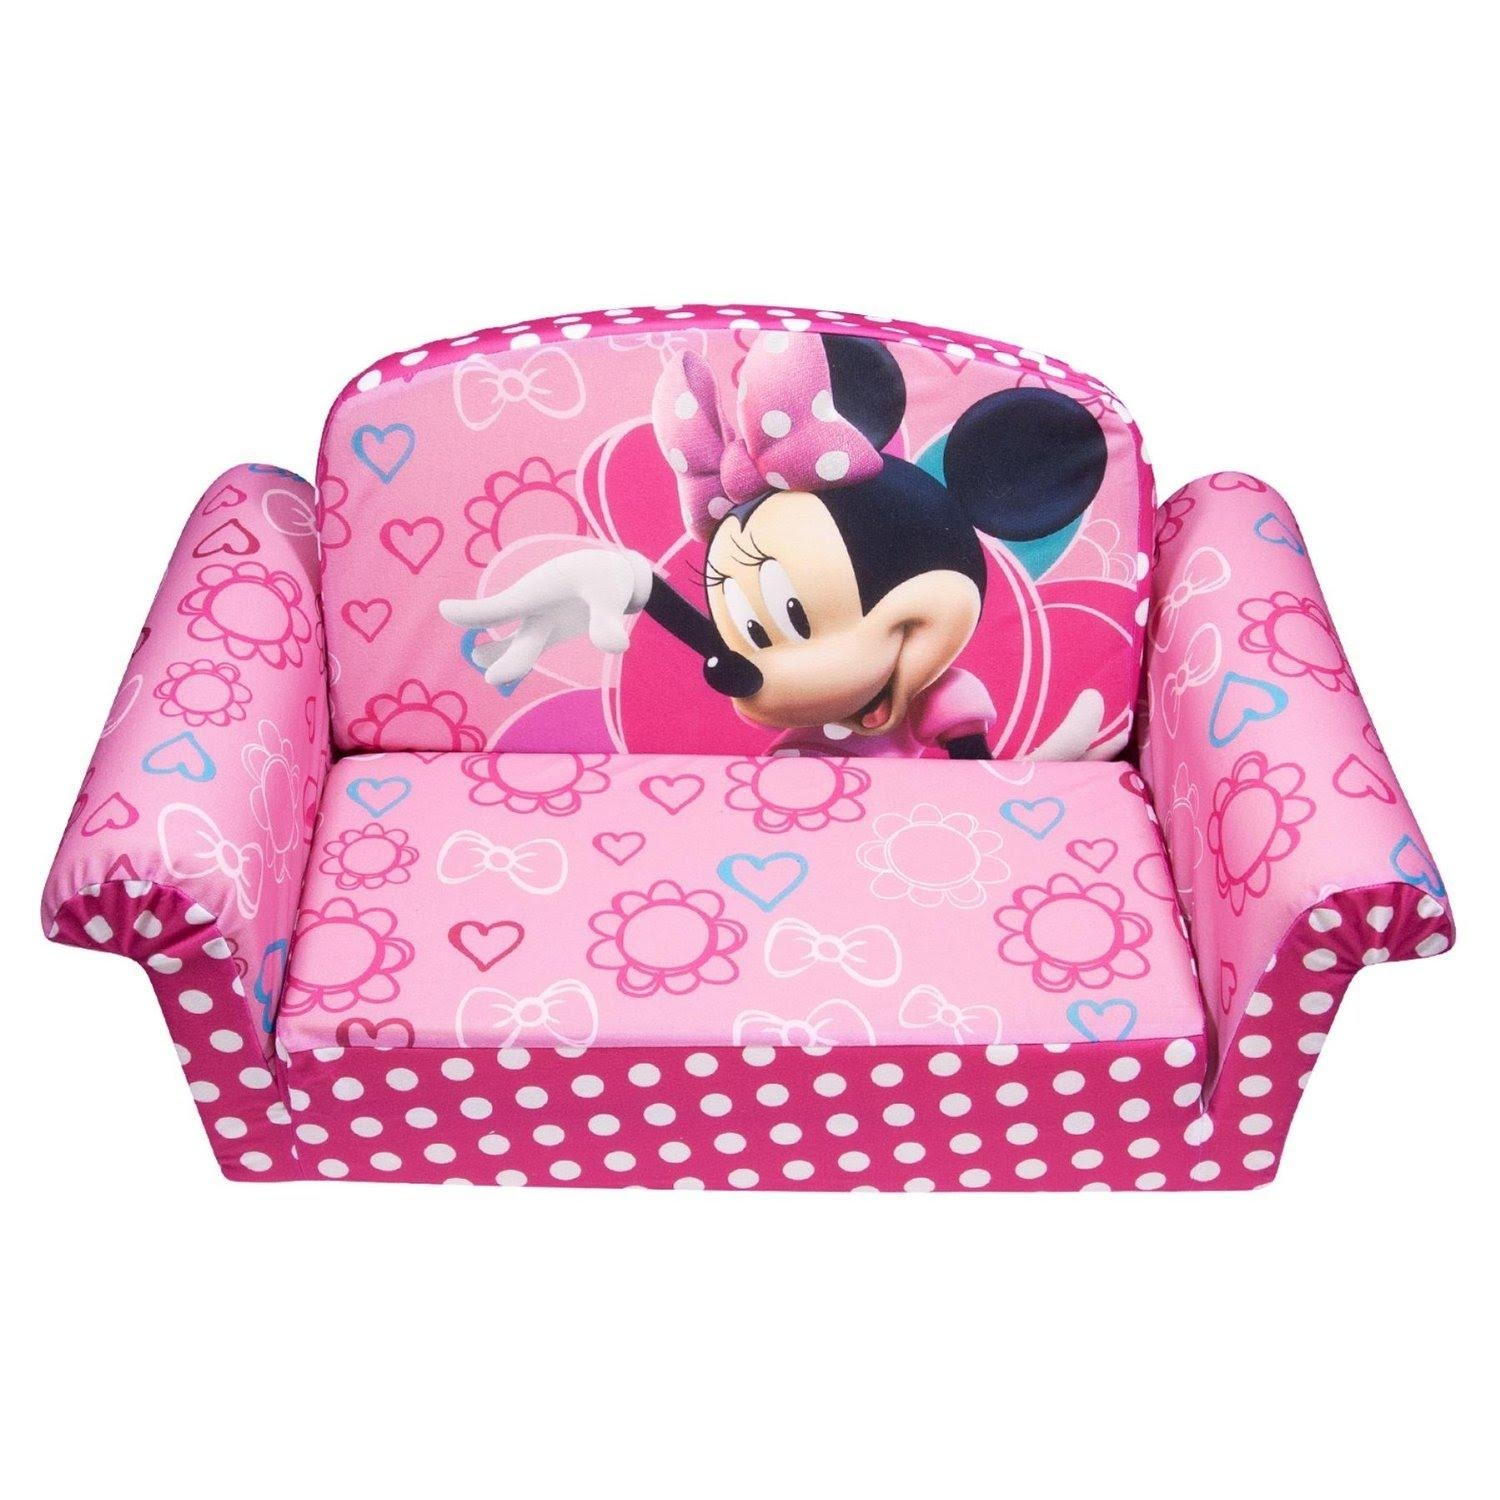 Review: Marshmallow Children's Furniture – 2 In 1 Flip Open Sofa Pertaining To Mickey Flip Sofas (Image 14 of 20)